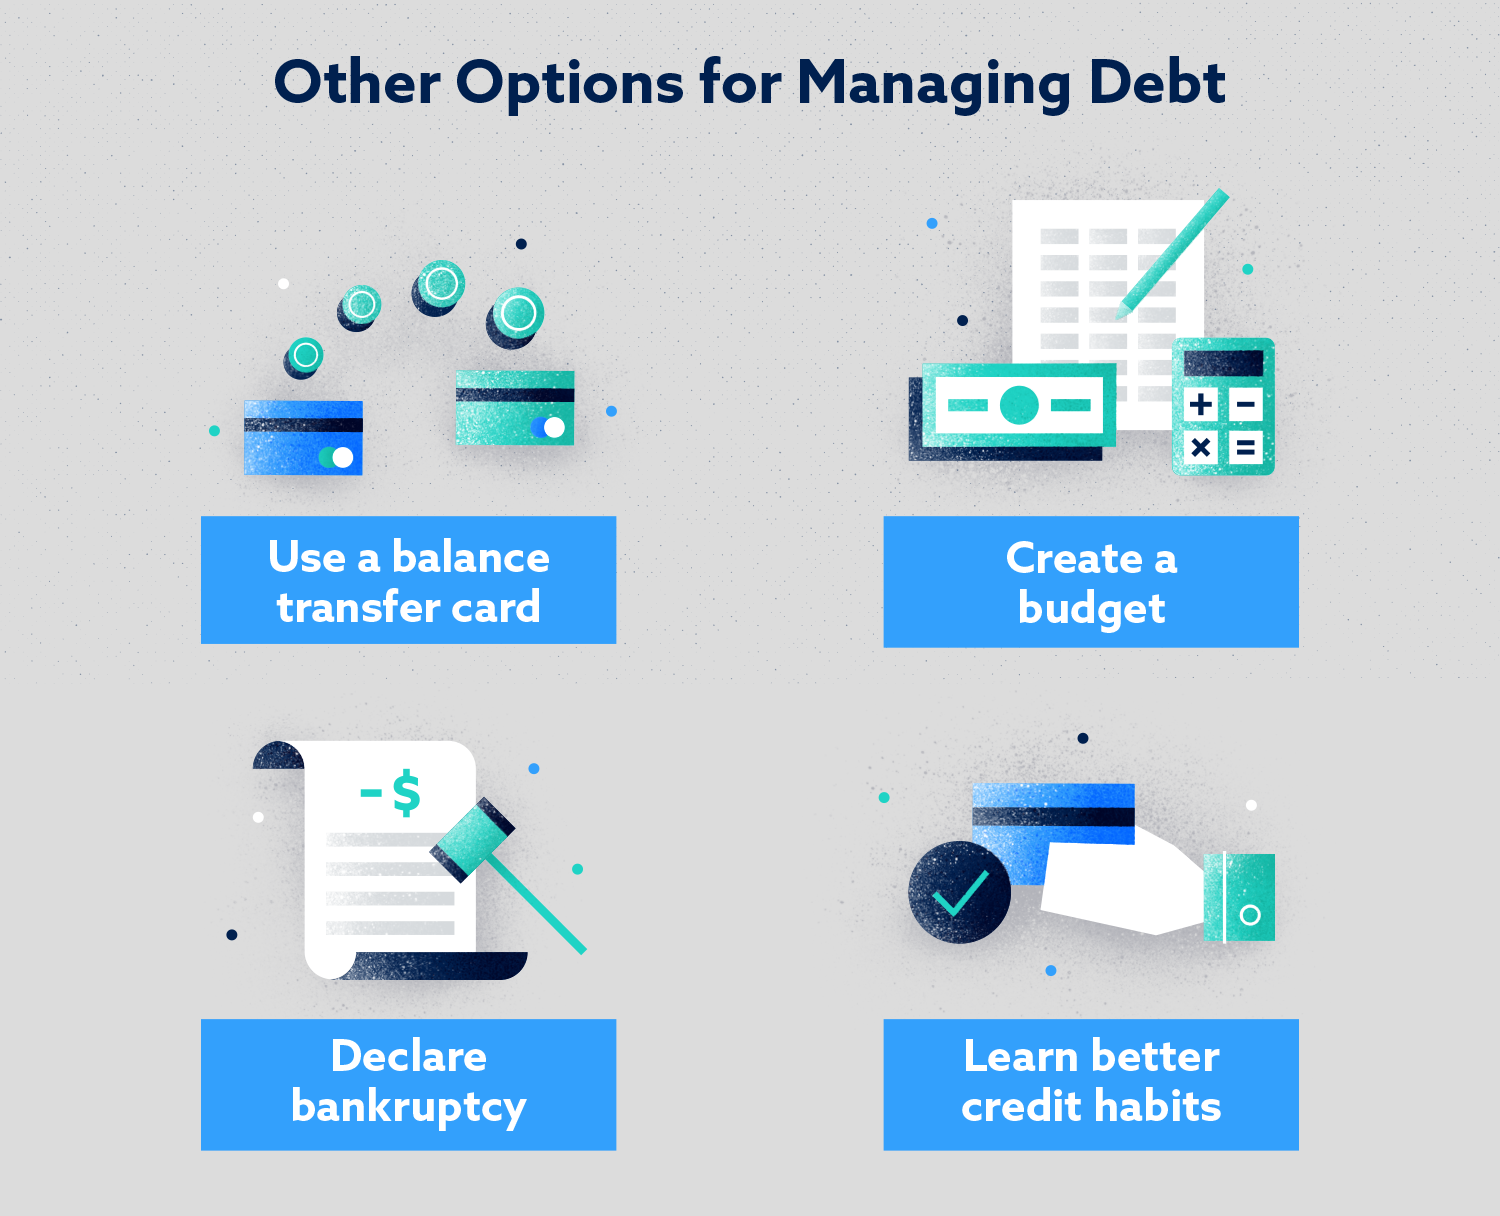 Other Options for Managing Debt Image